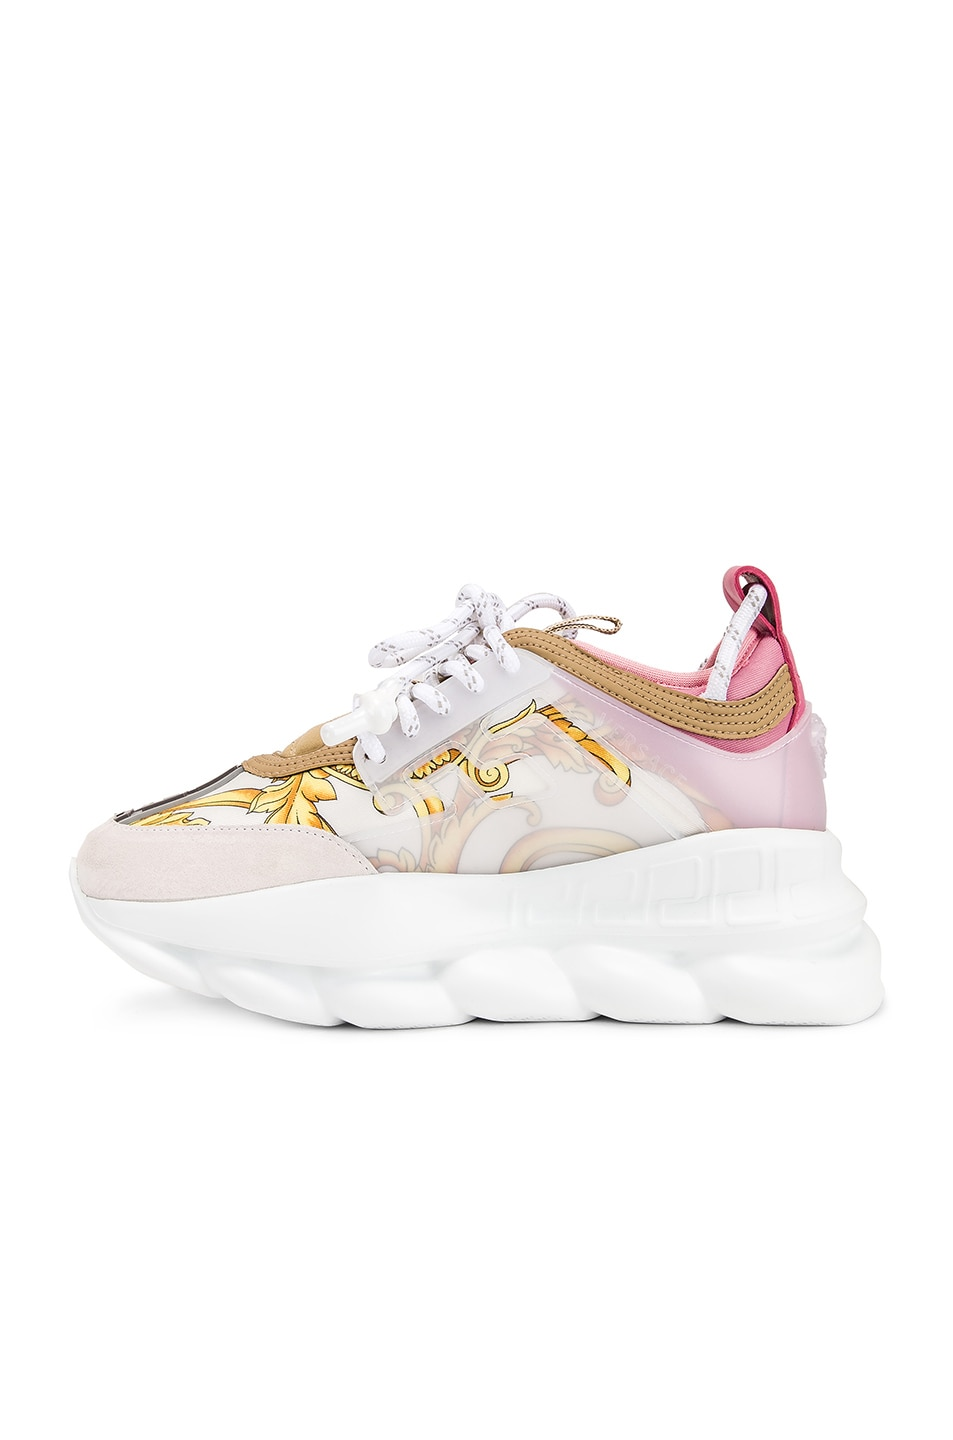 Image 5 of VERSACE Chain Reaction Sneakers in Hibiscus White Multi